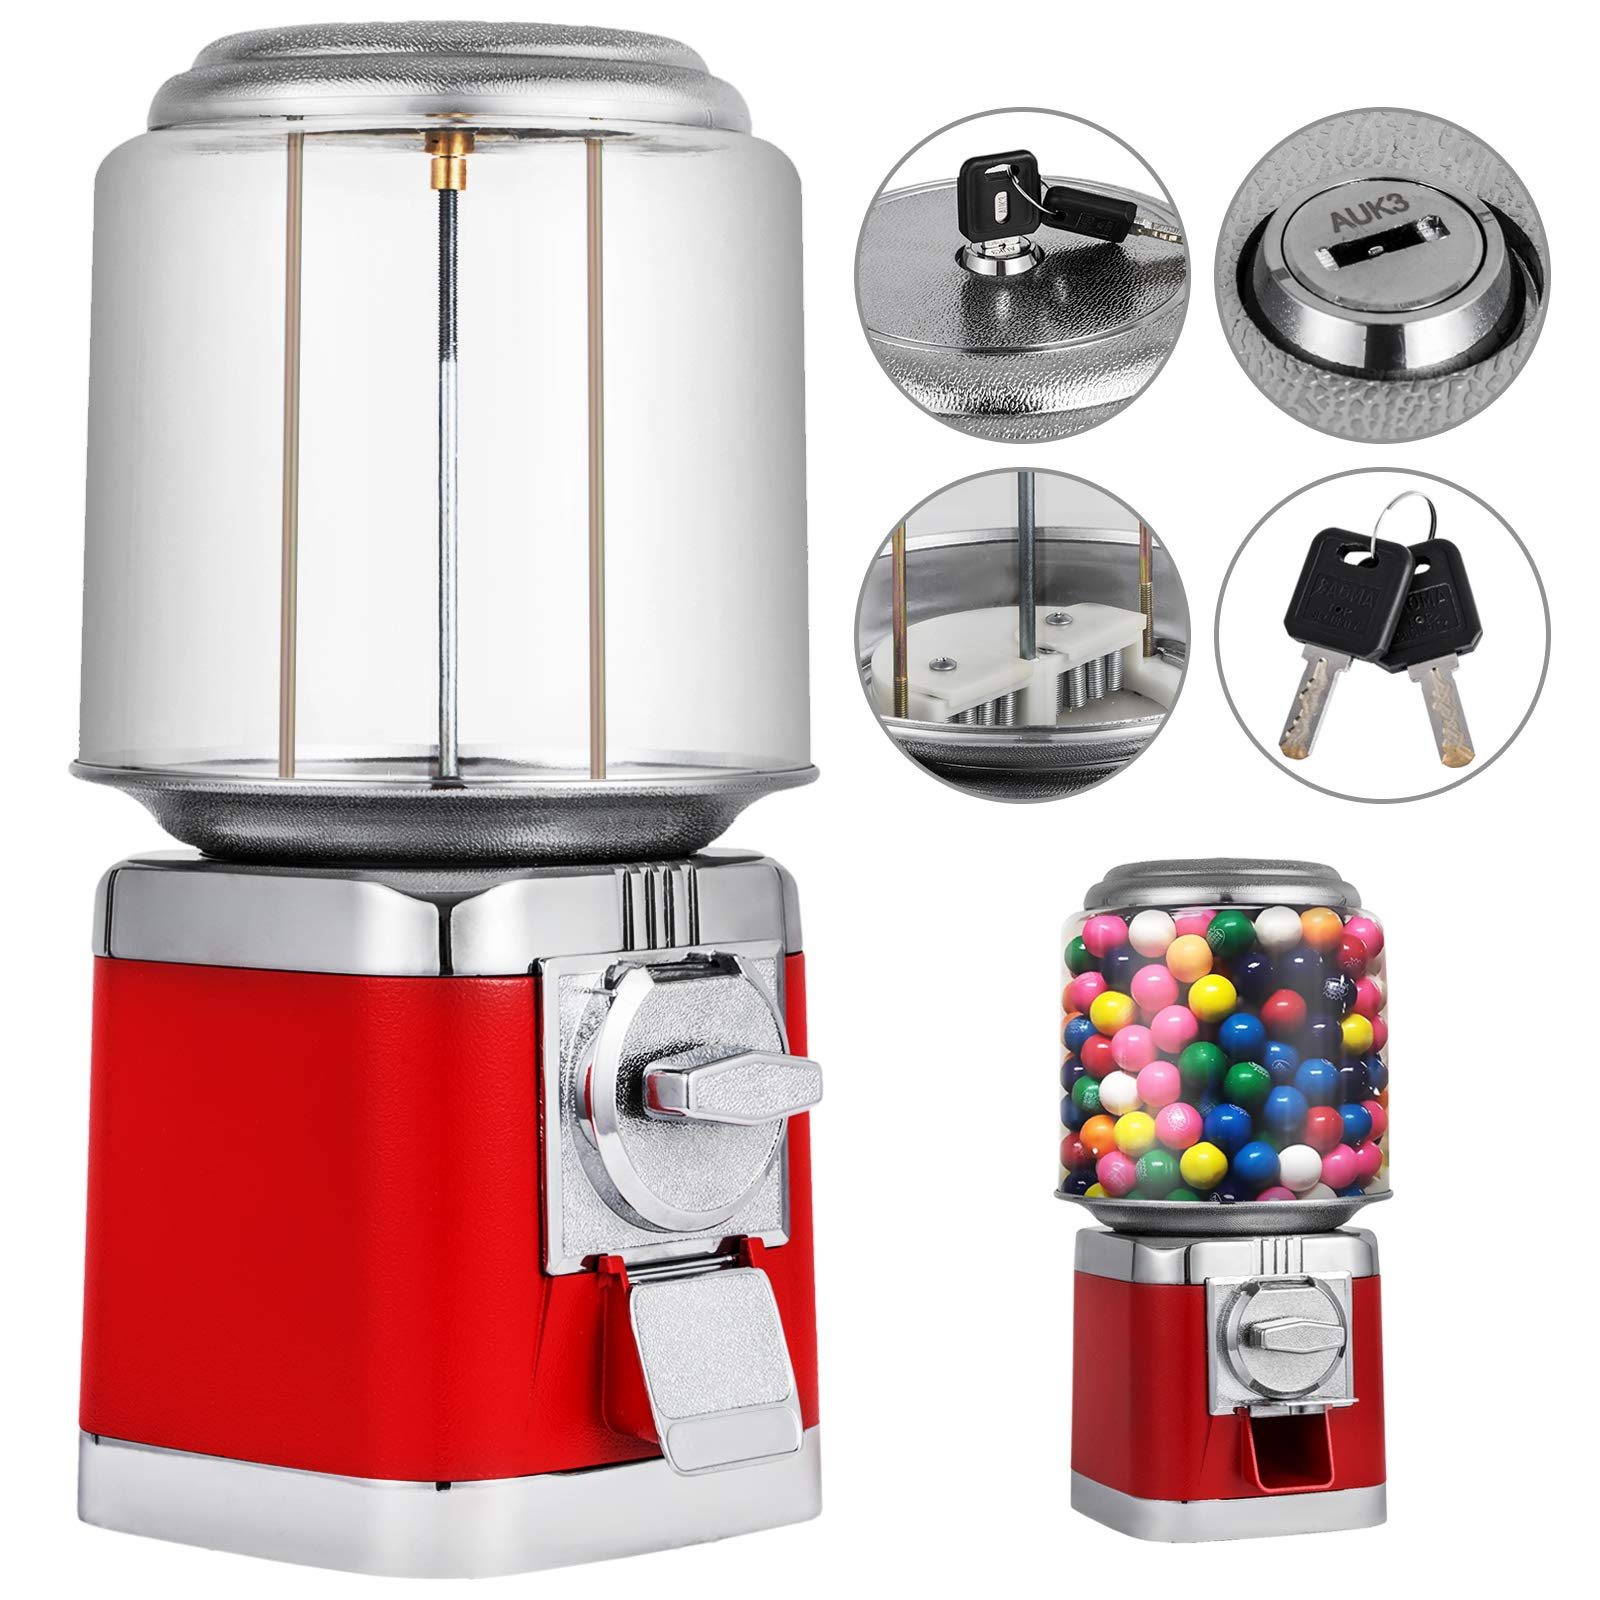 Mophorn Gumball Machine Durable Metal Body Gumball Dispenser Machine with Key Lock Big Gumball Machine Red Style Candy Vending Machine Perfect for Home Use, Gaming Stores